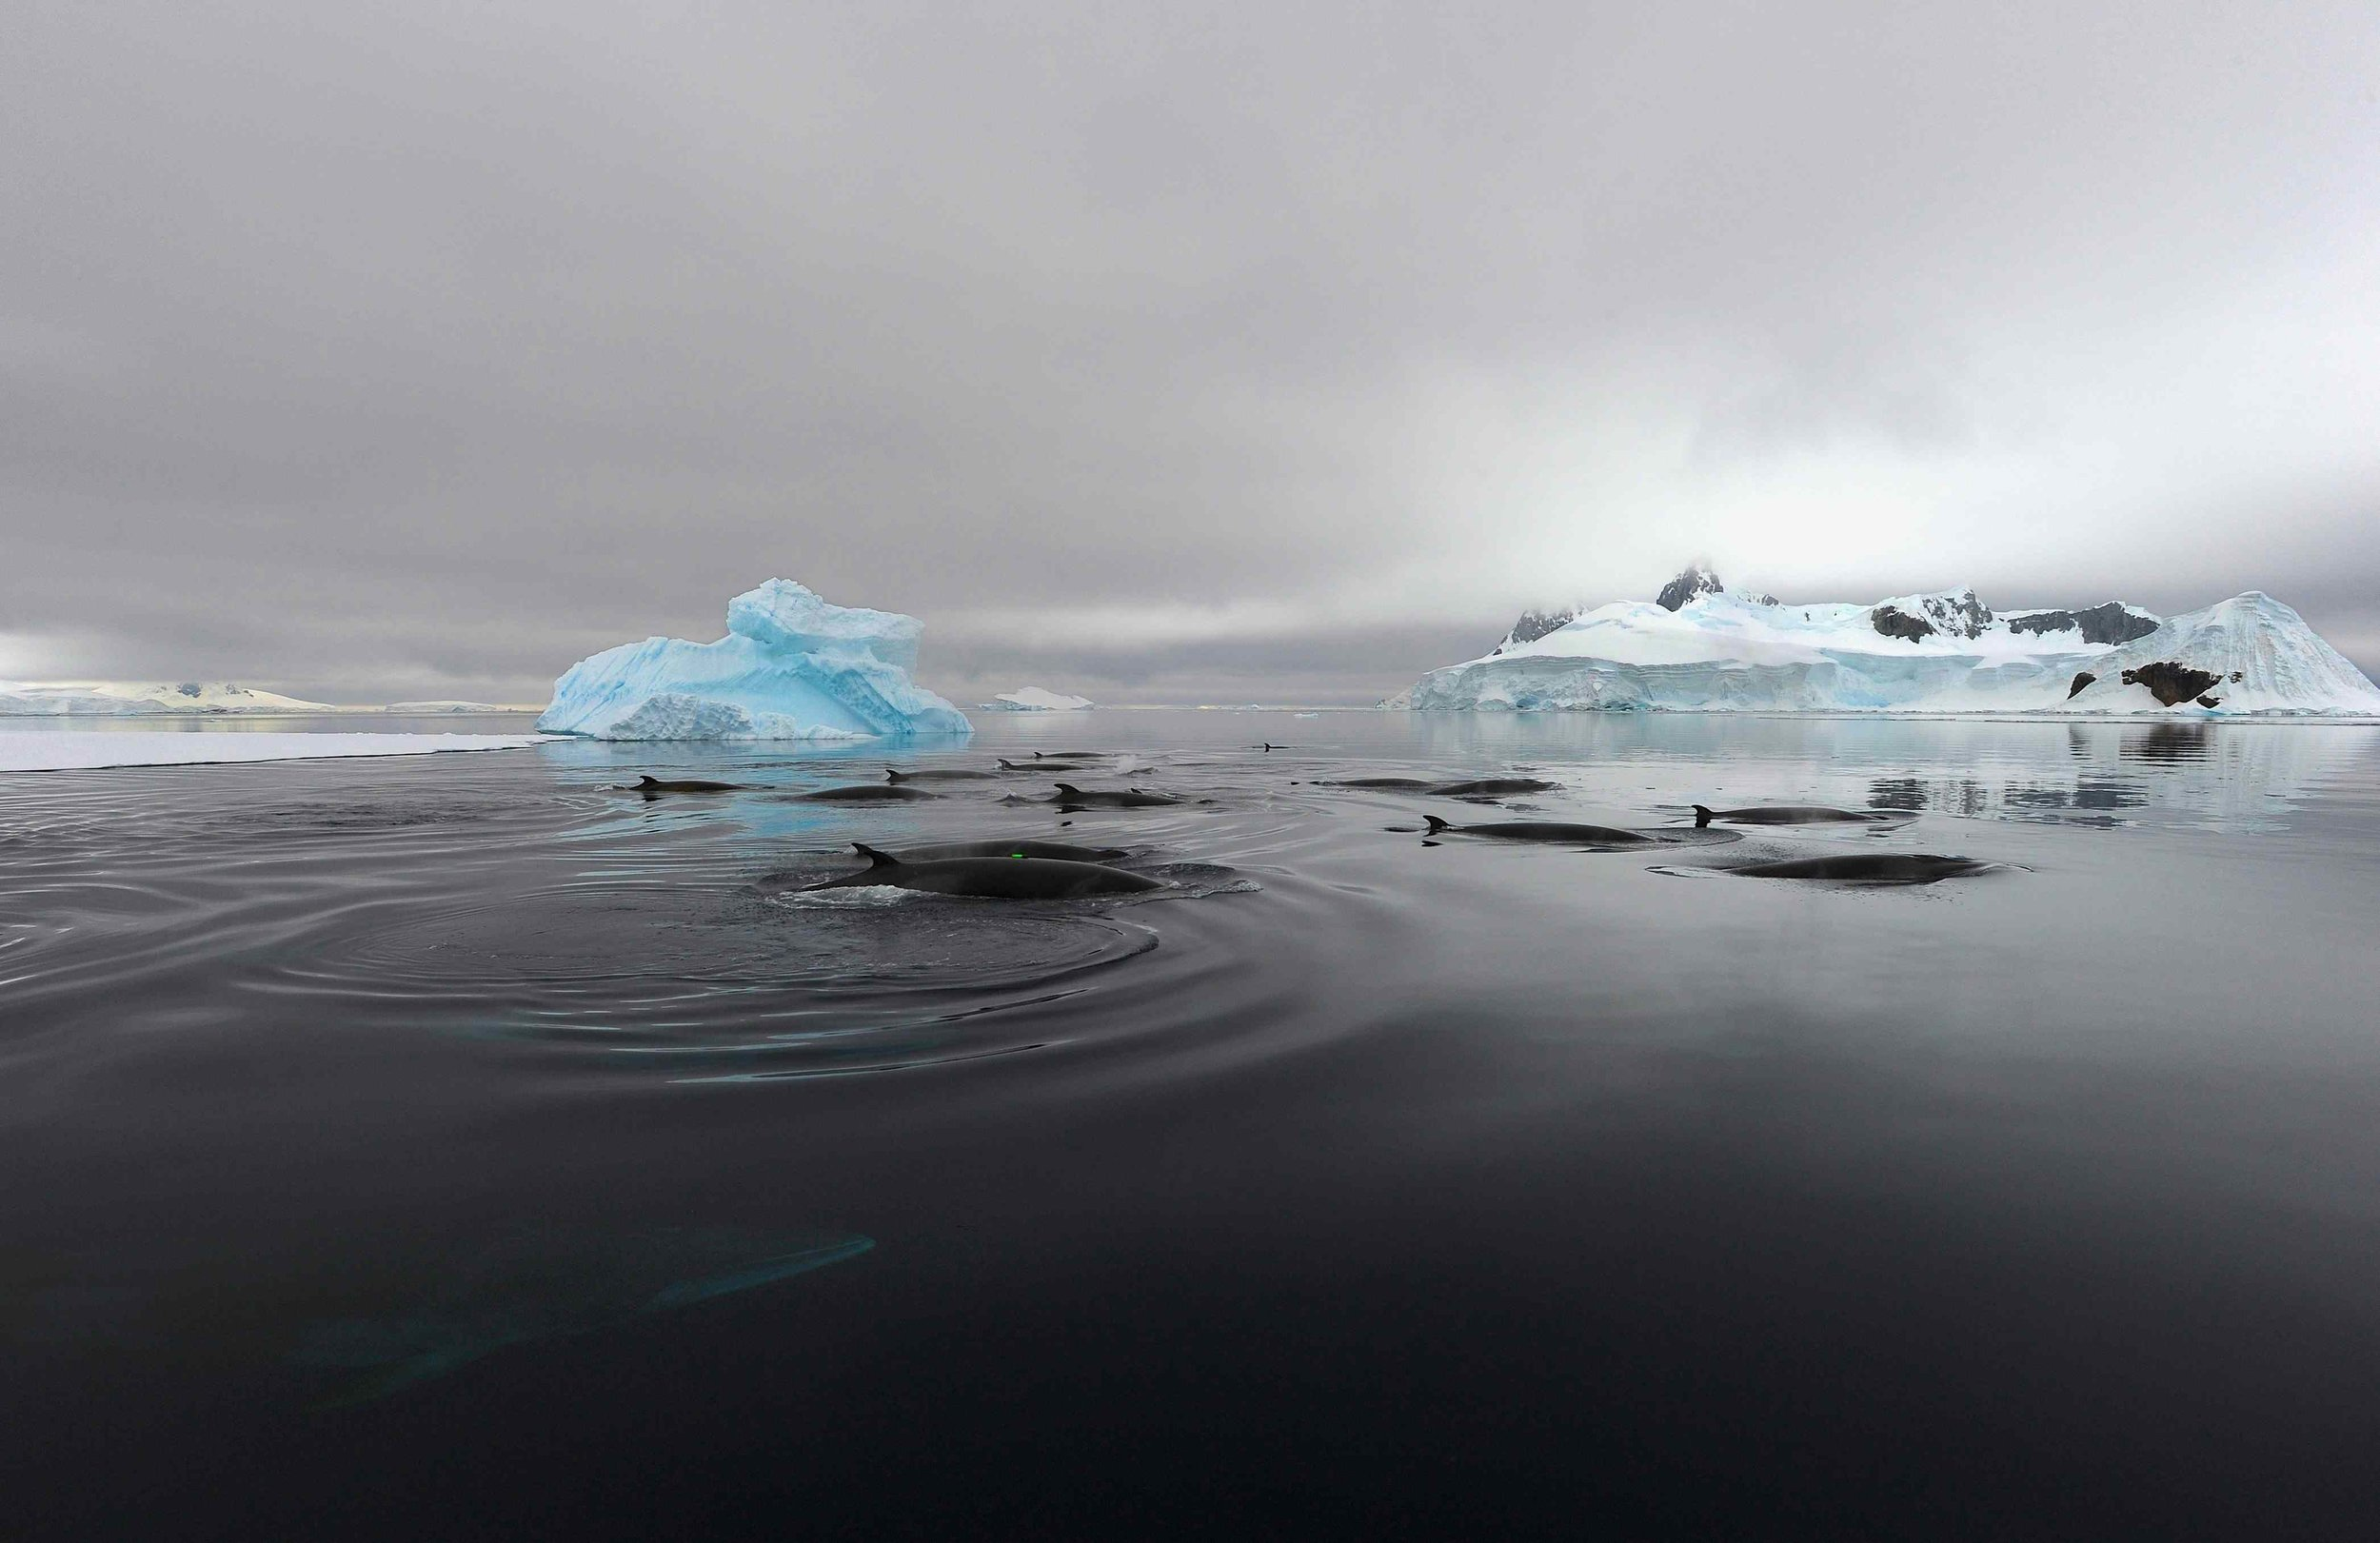 Minke whales depend on ice for their survival - Around the Antarctic Peninsula, climate change is causing a significant decrease in sea ice cover. As Minke whales take cover in the sea ice to hide from killer whales, these changes makes Minke whales more vulnerable to predators